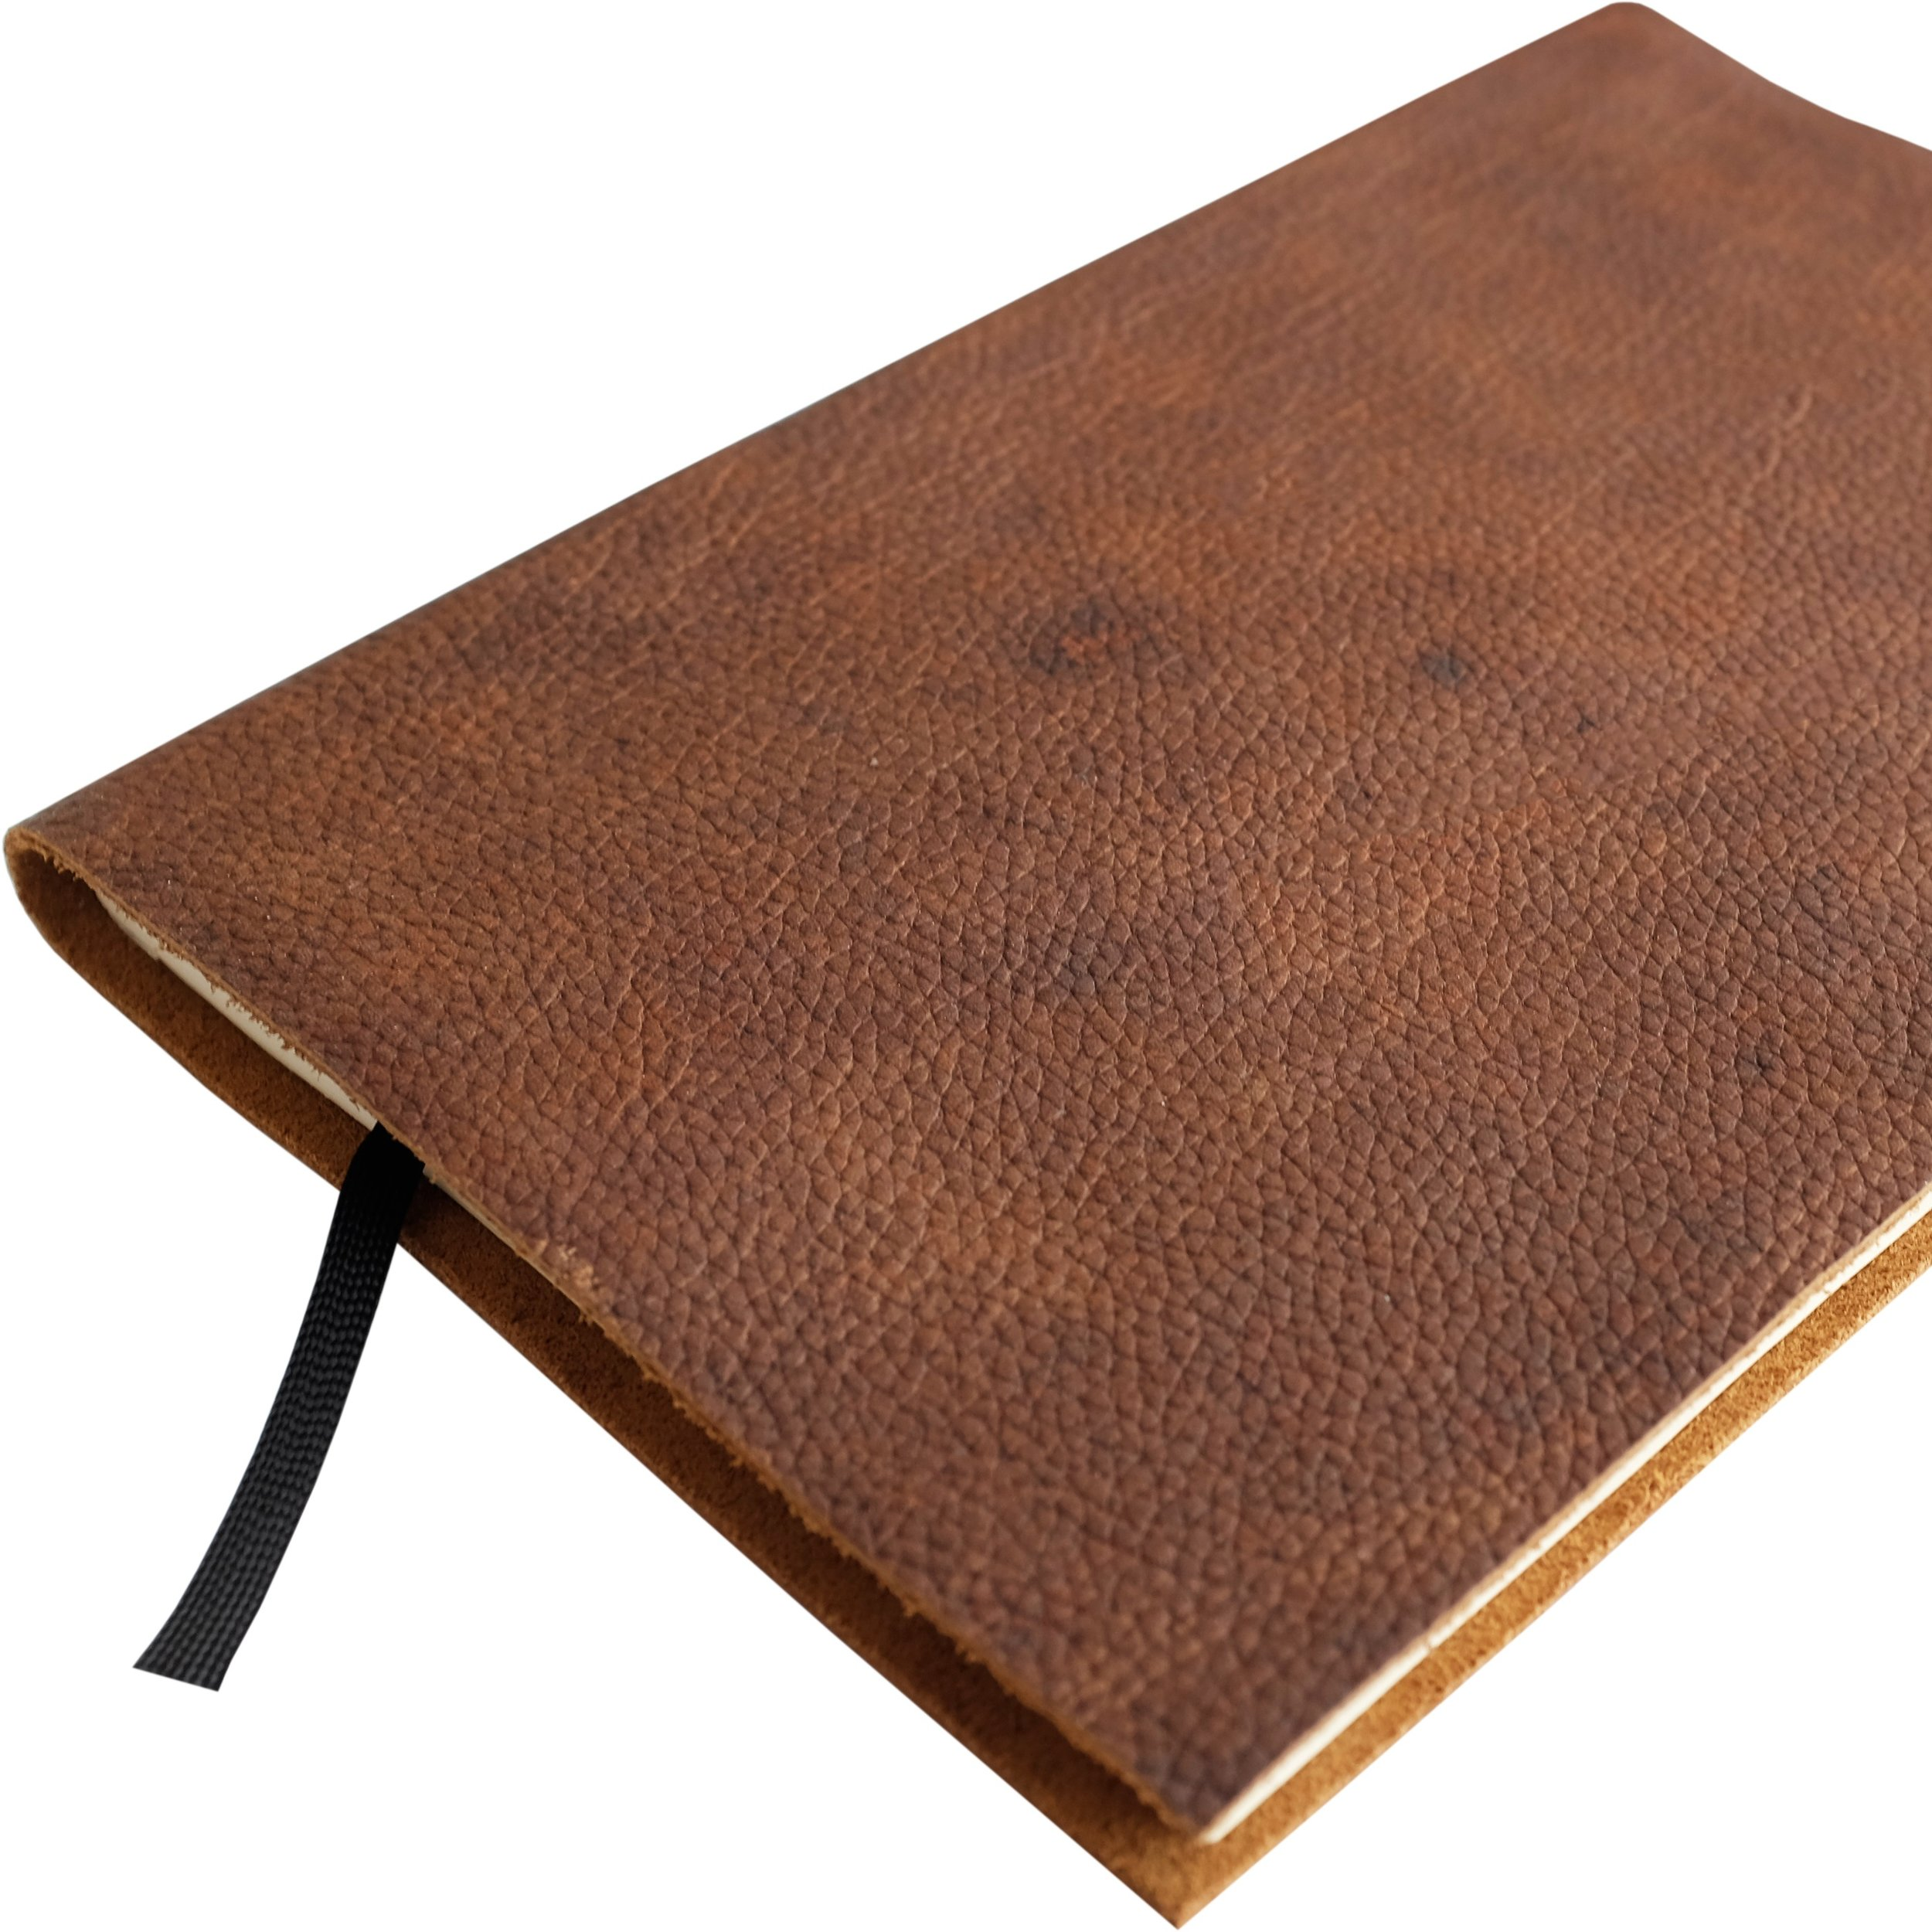 Stierbinder notebook - Take notes on your shamanic journey with this vintage leather notebook.(Photo Credit: Stierbinder)Discover the full story in Issue 3.